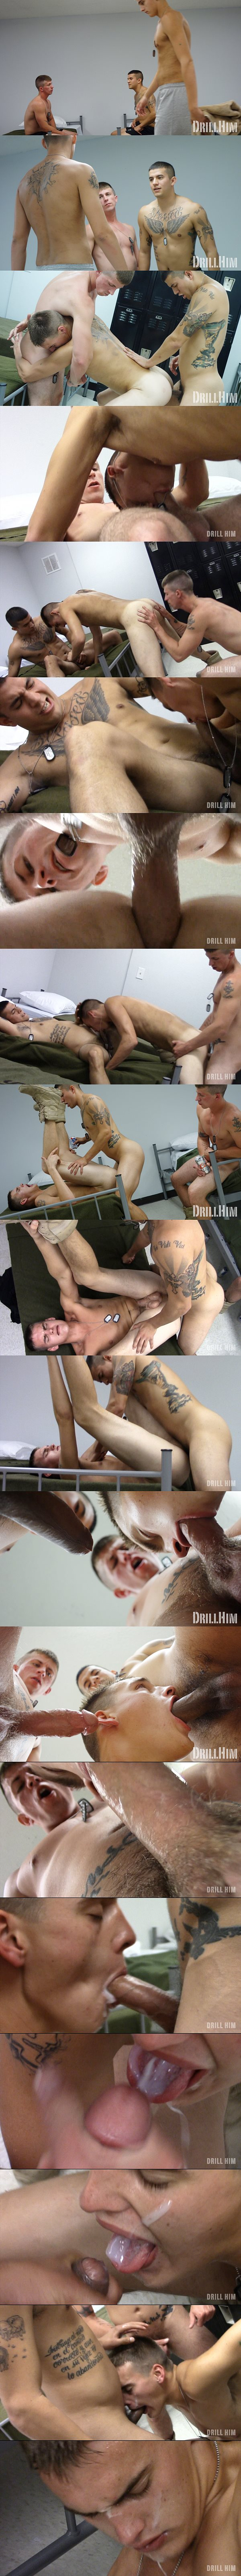 Tony Conner and Joey Rico barebacks Broc in PVT Pumped and Dumped at Drillhim 02